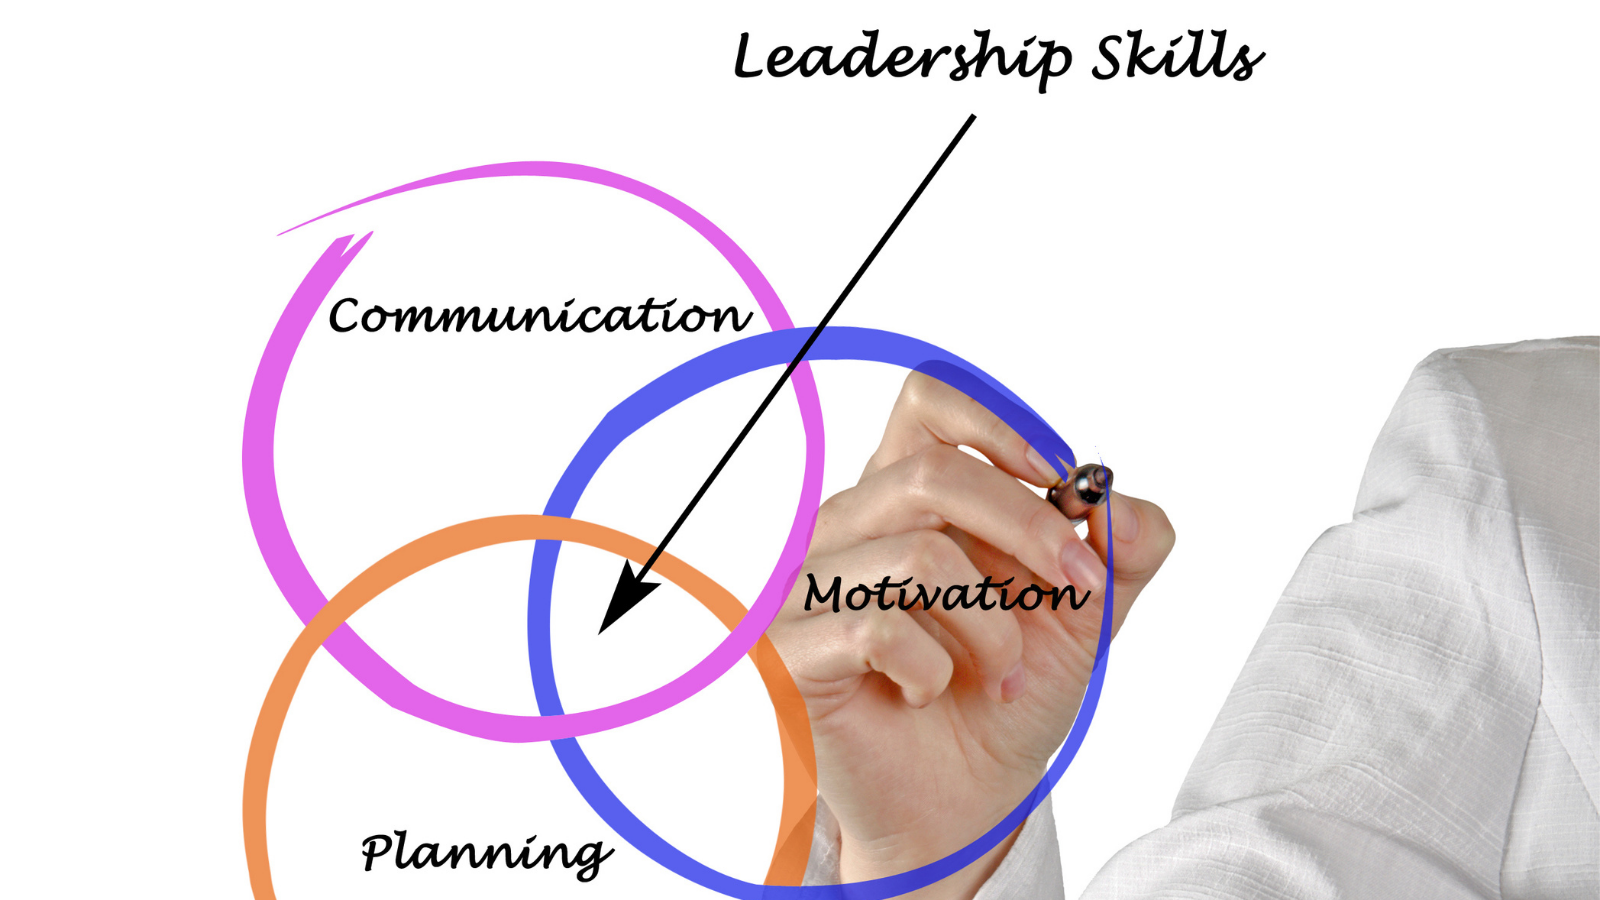 Leadership Skills: Requirements For An Effective Mentor